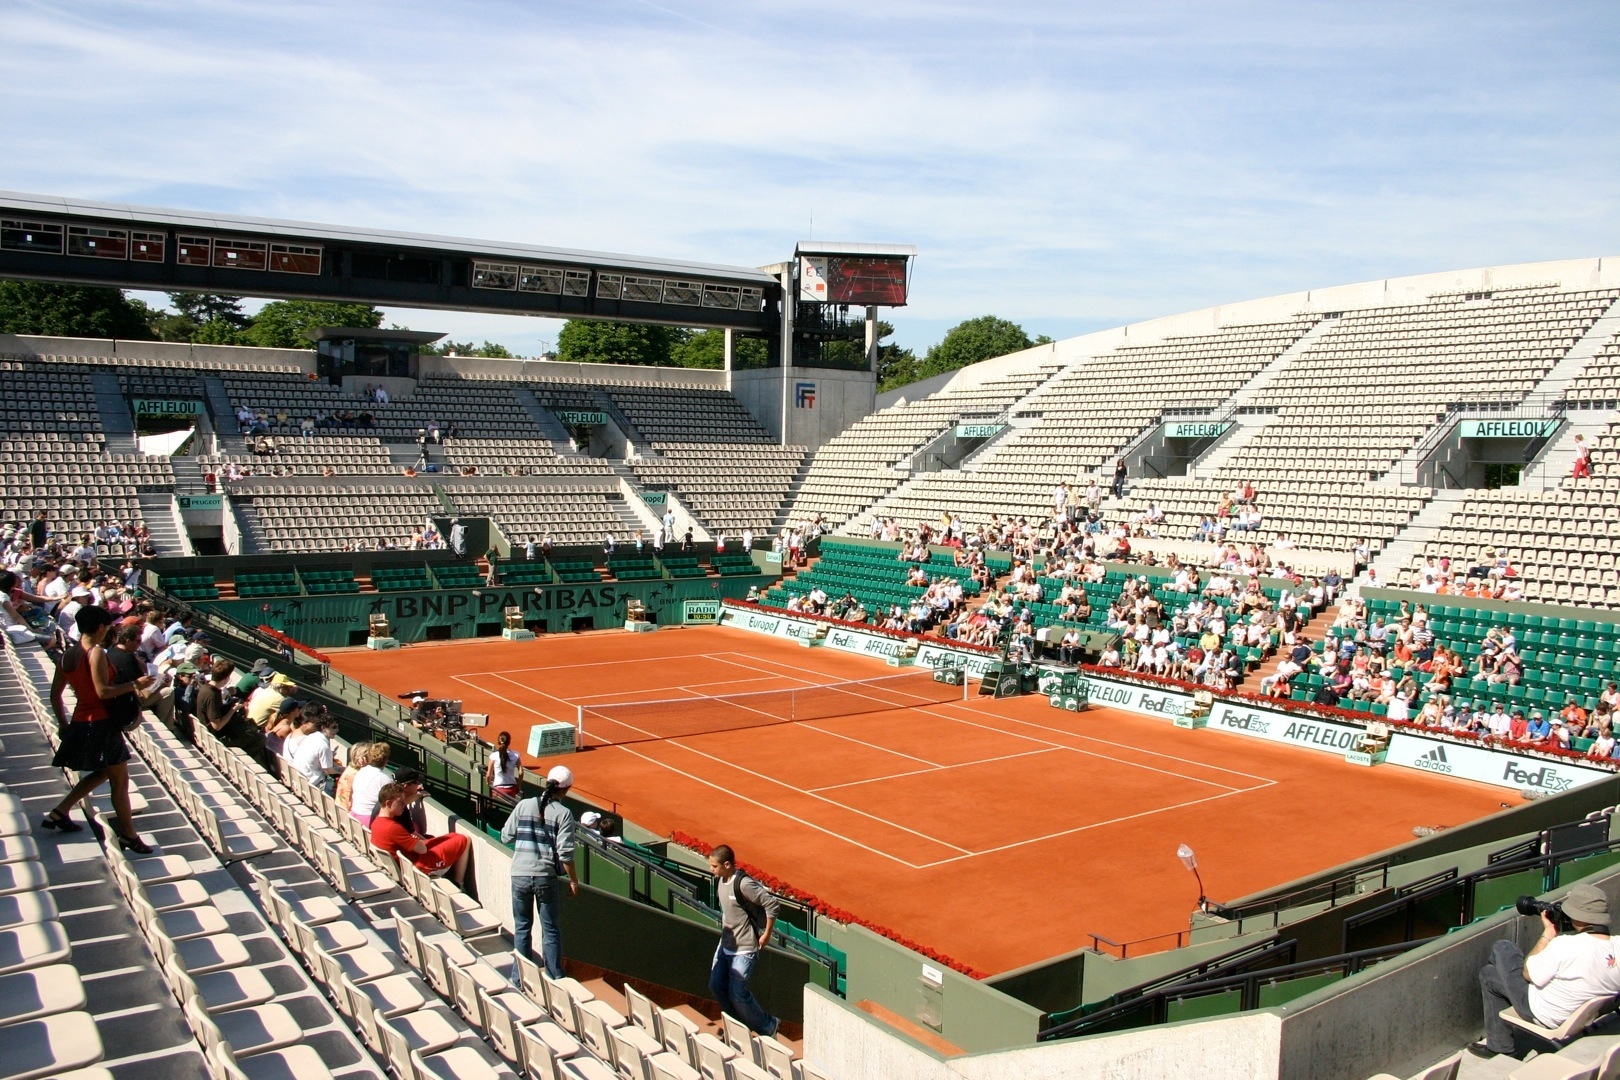 Court Suzanne Lenglen - Info-stades Pictures Of Courts